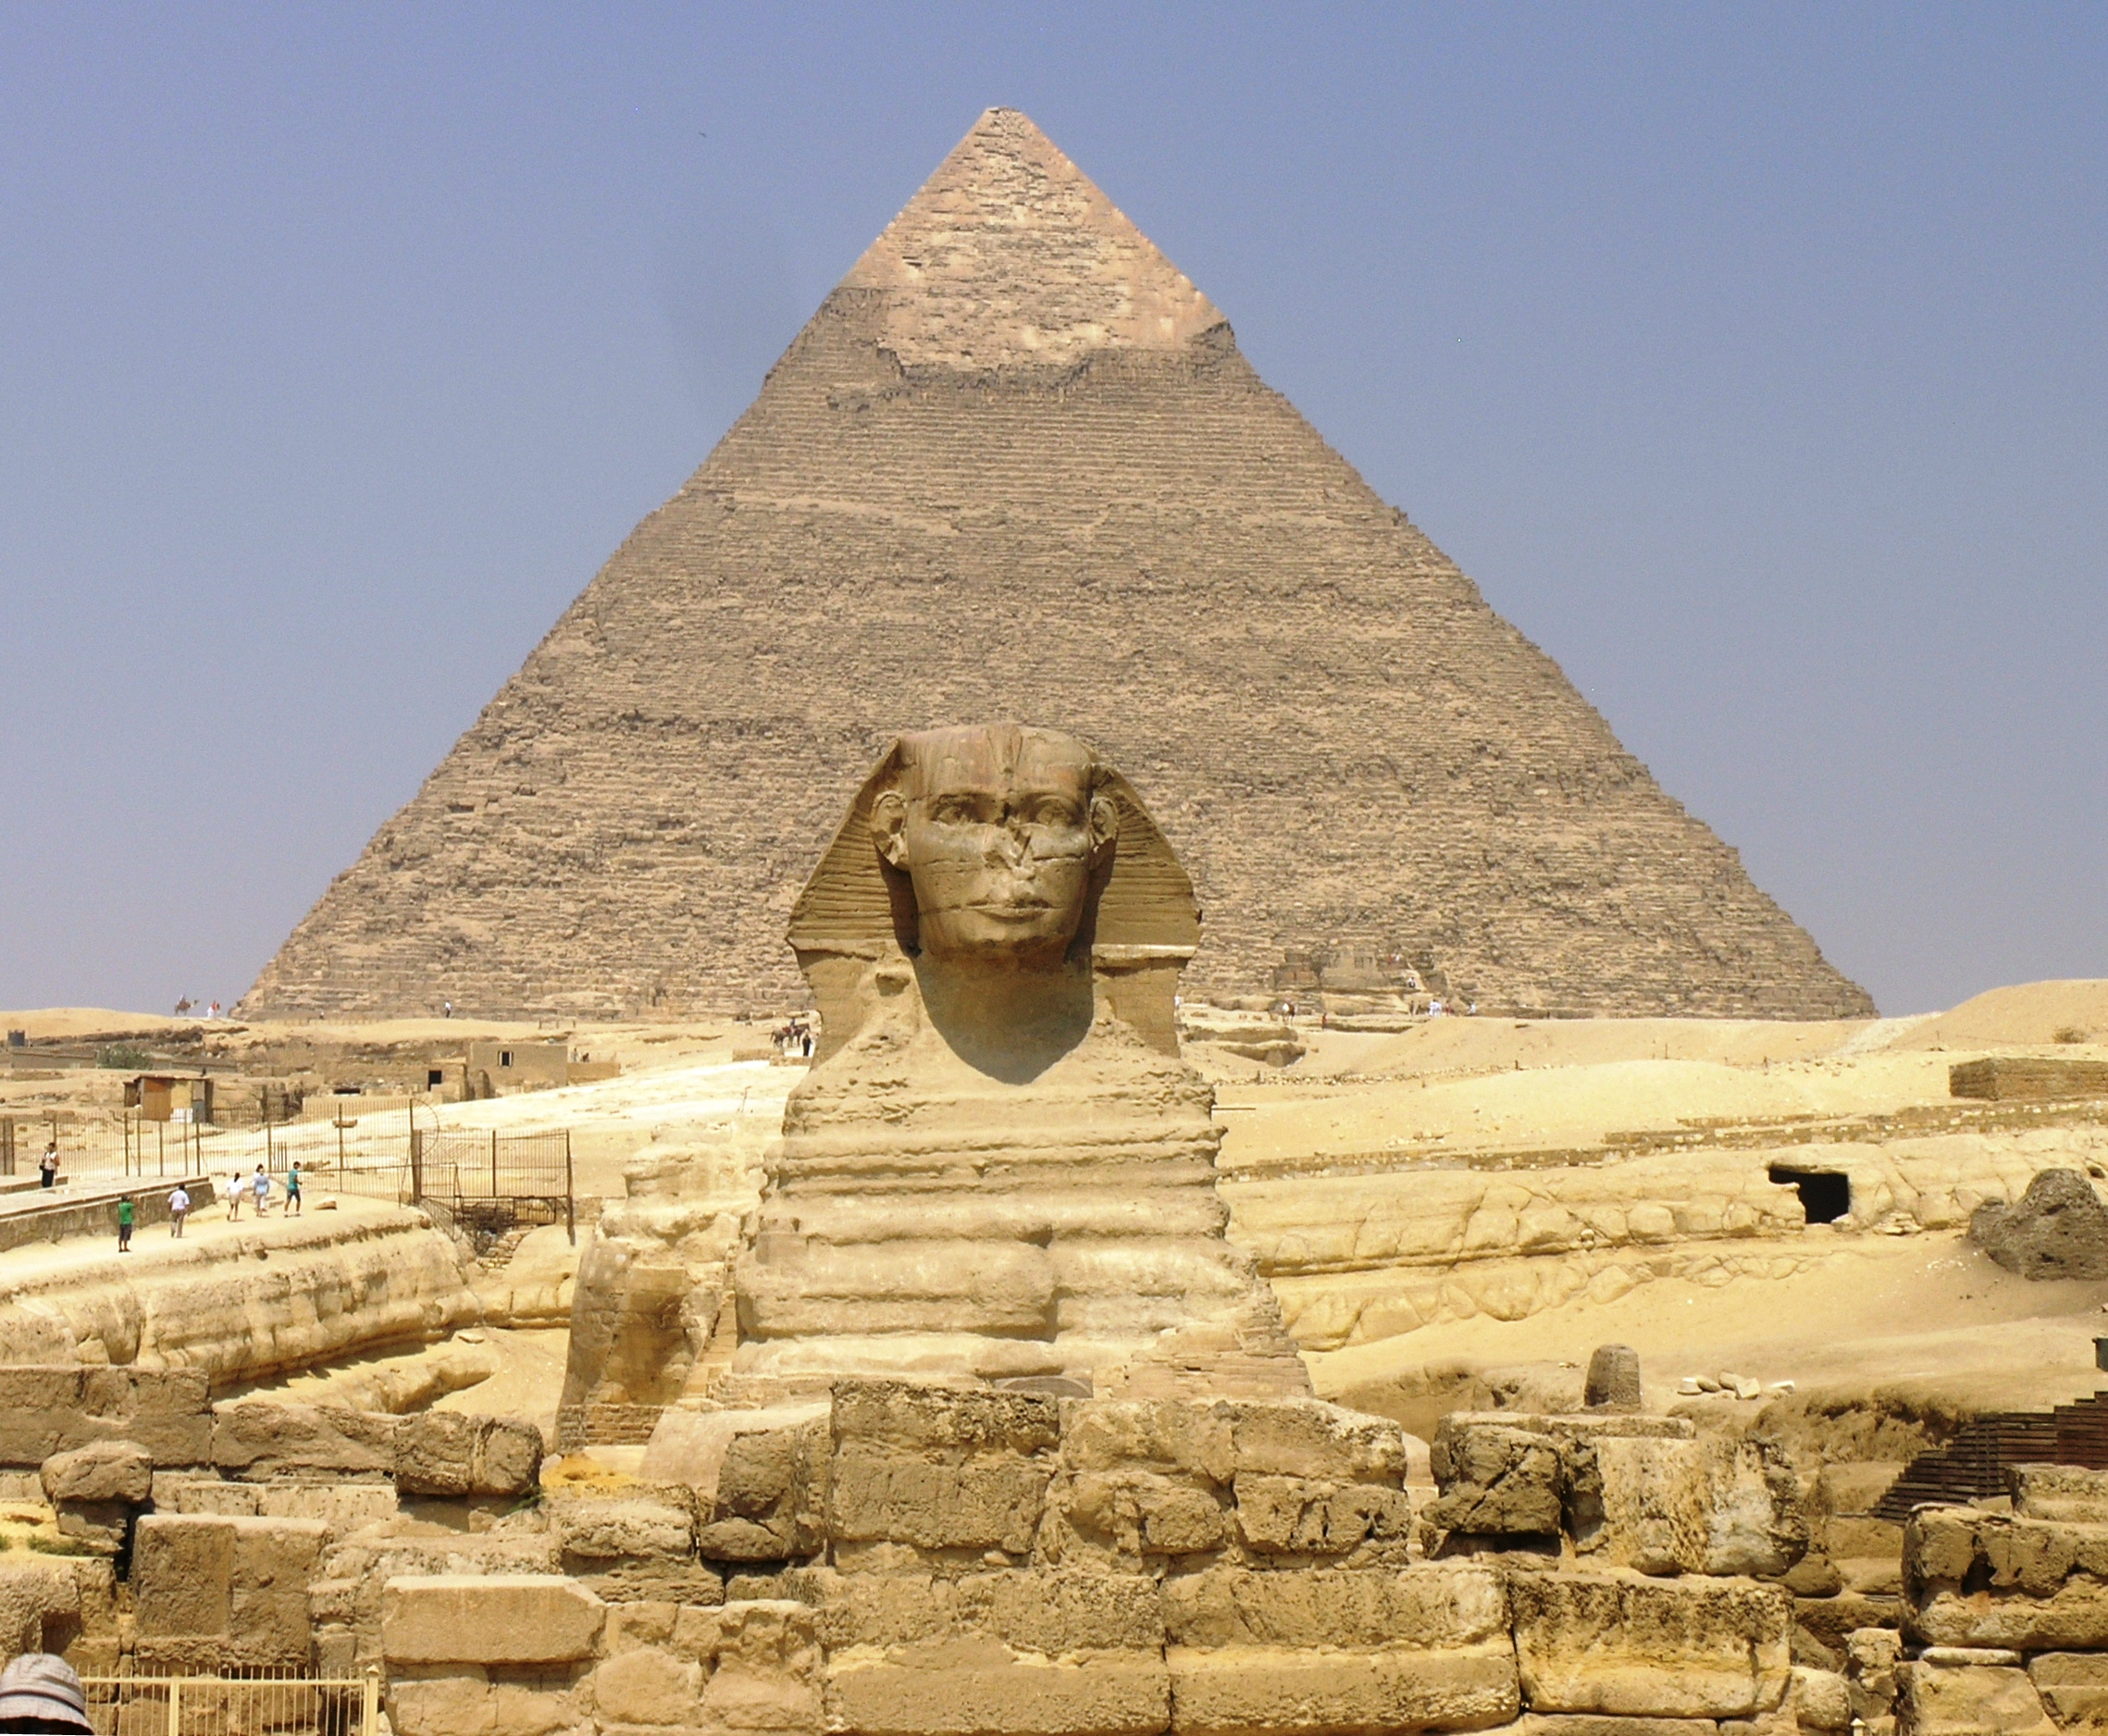 File:Giza Plateau - Great Sphinx with Pyramid of Khafre in background.JPG - Wikimedia Commons